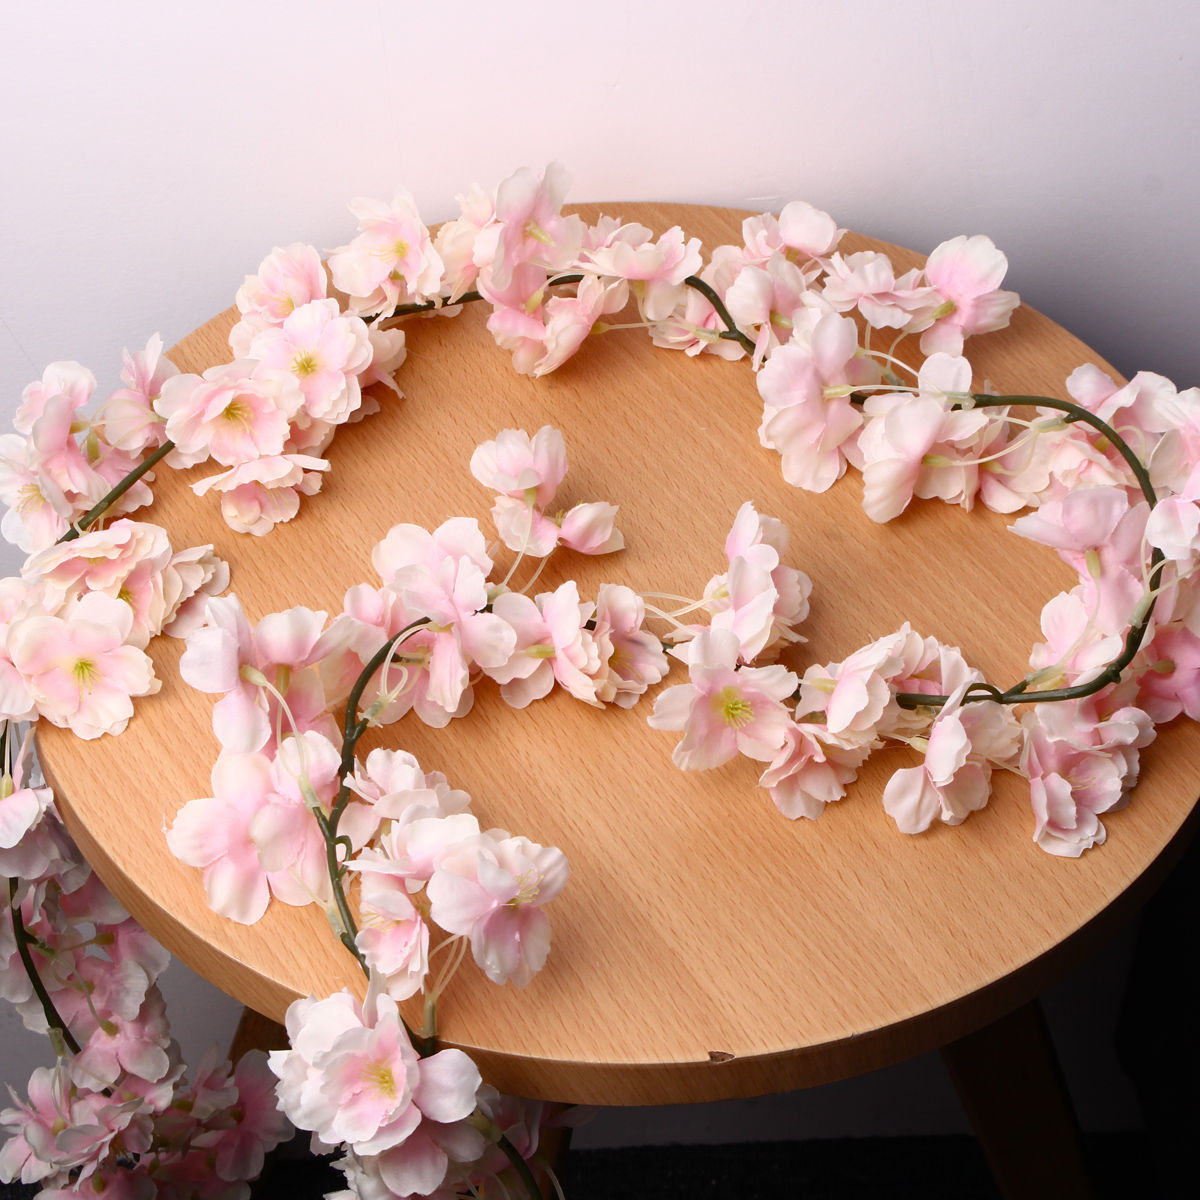 Artificial Silk Cherry Blossom Flower Hanging Vine Garlands Home Wedding Decorations